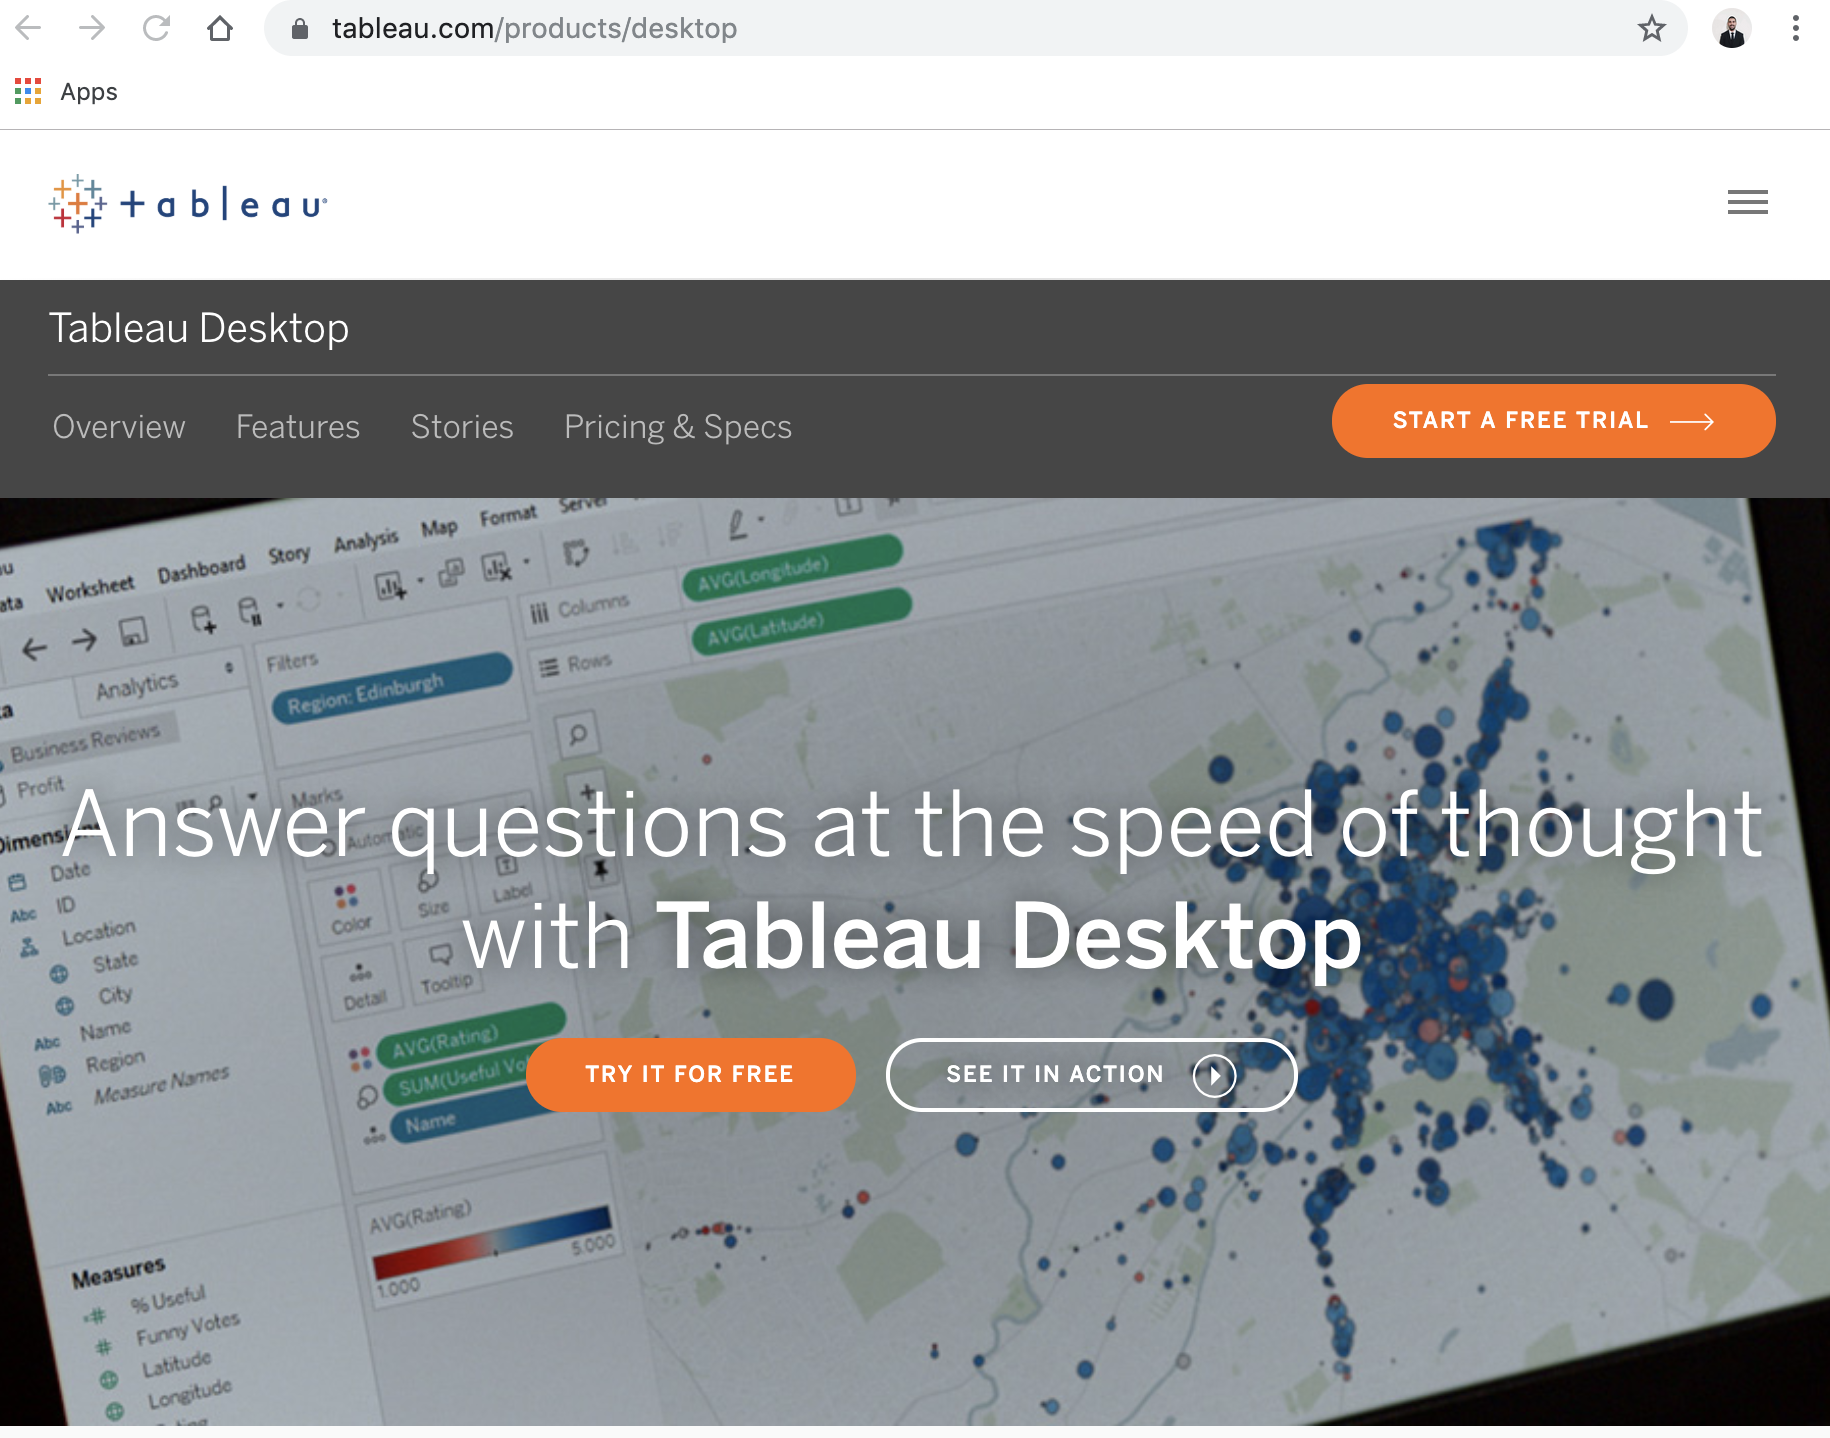 Getting Started with Tableau - Gregory DeSantis - Medium